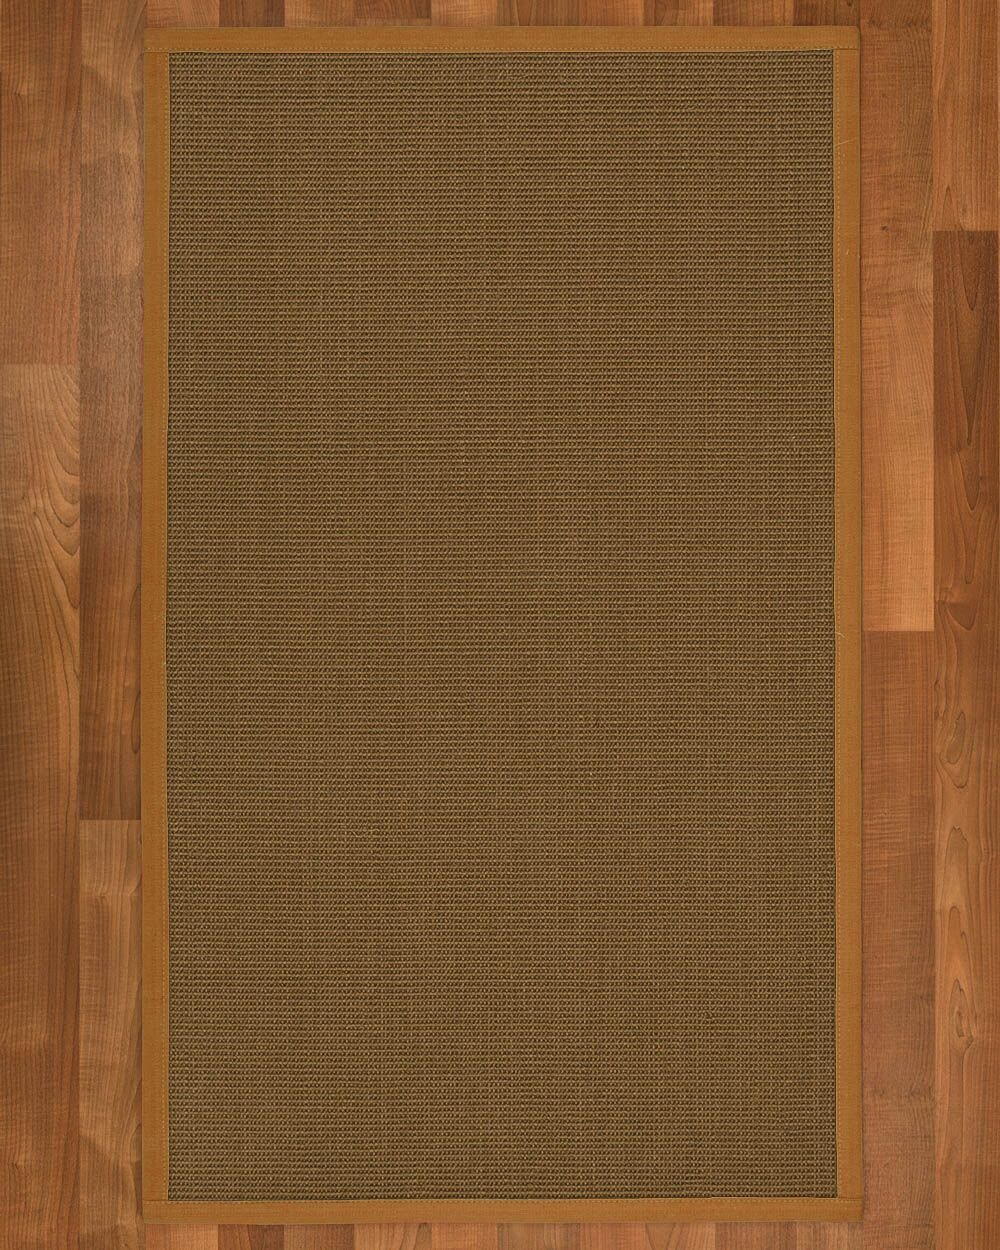 Aderyn Hand-Woven Brown Area Rug Rug Size: Rectangle 9' X 12'